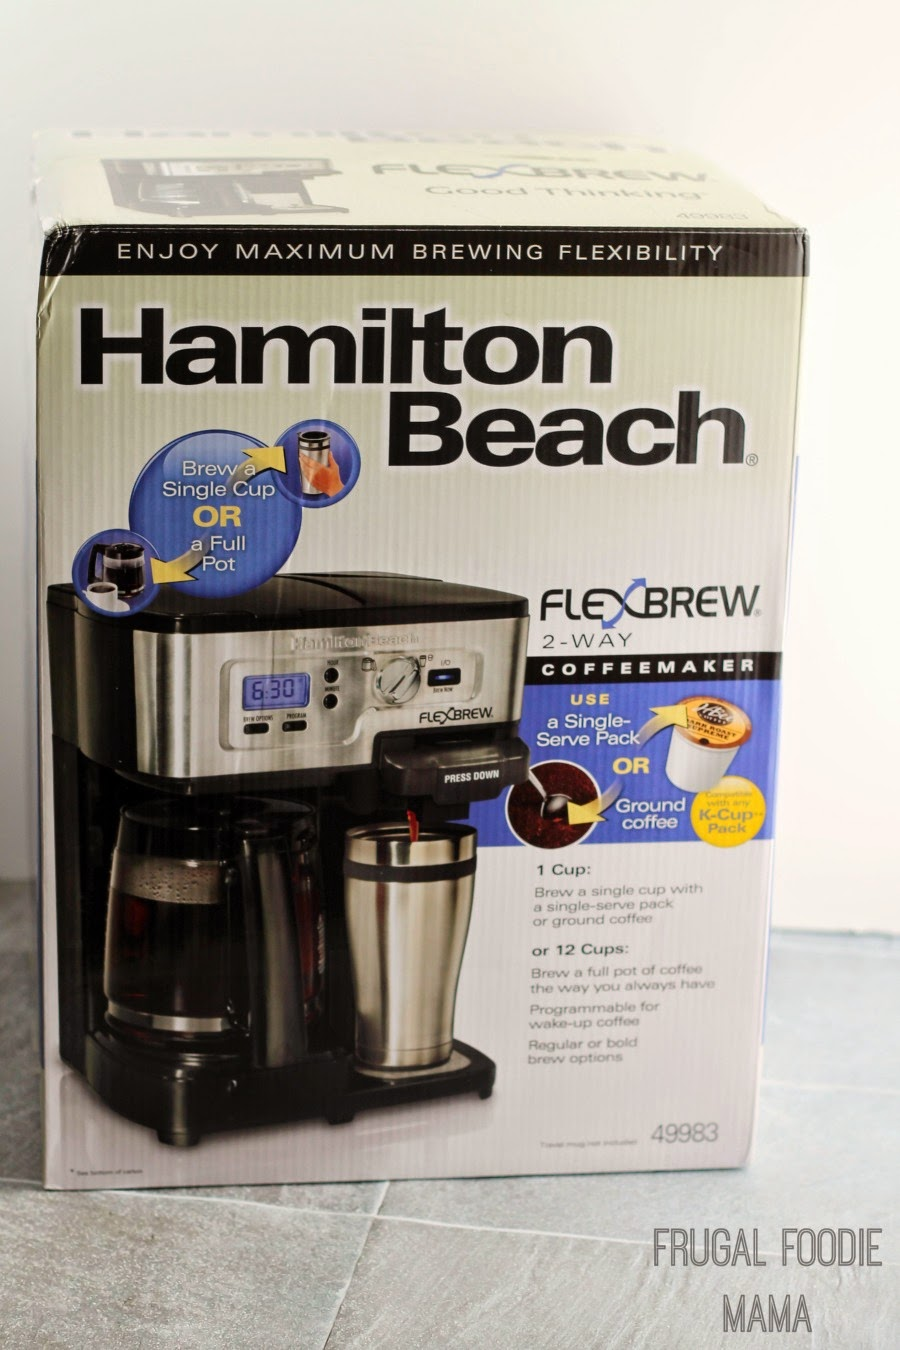 Enter to win a Hamilton Beach FlexBrew 2-Way Coffee Maker!